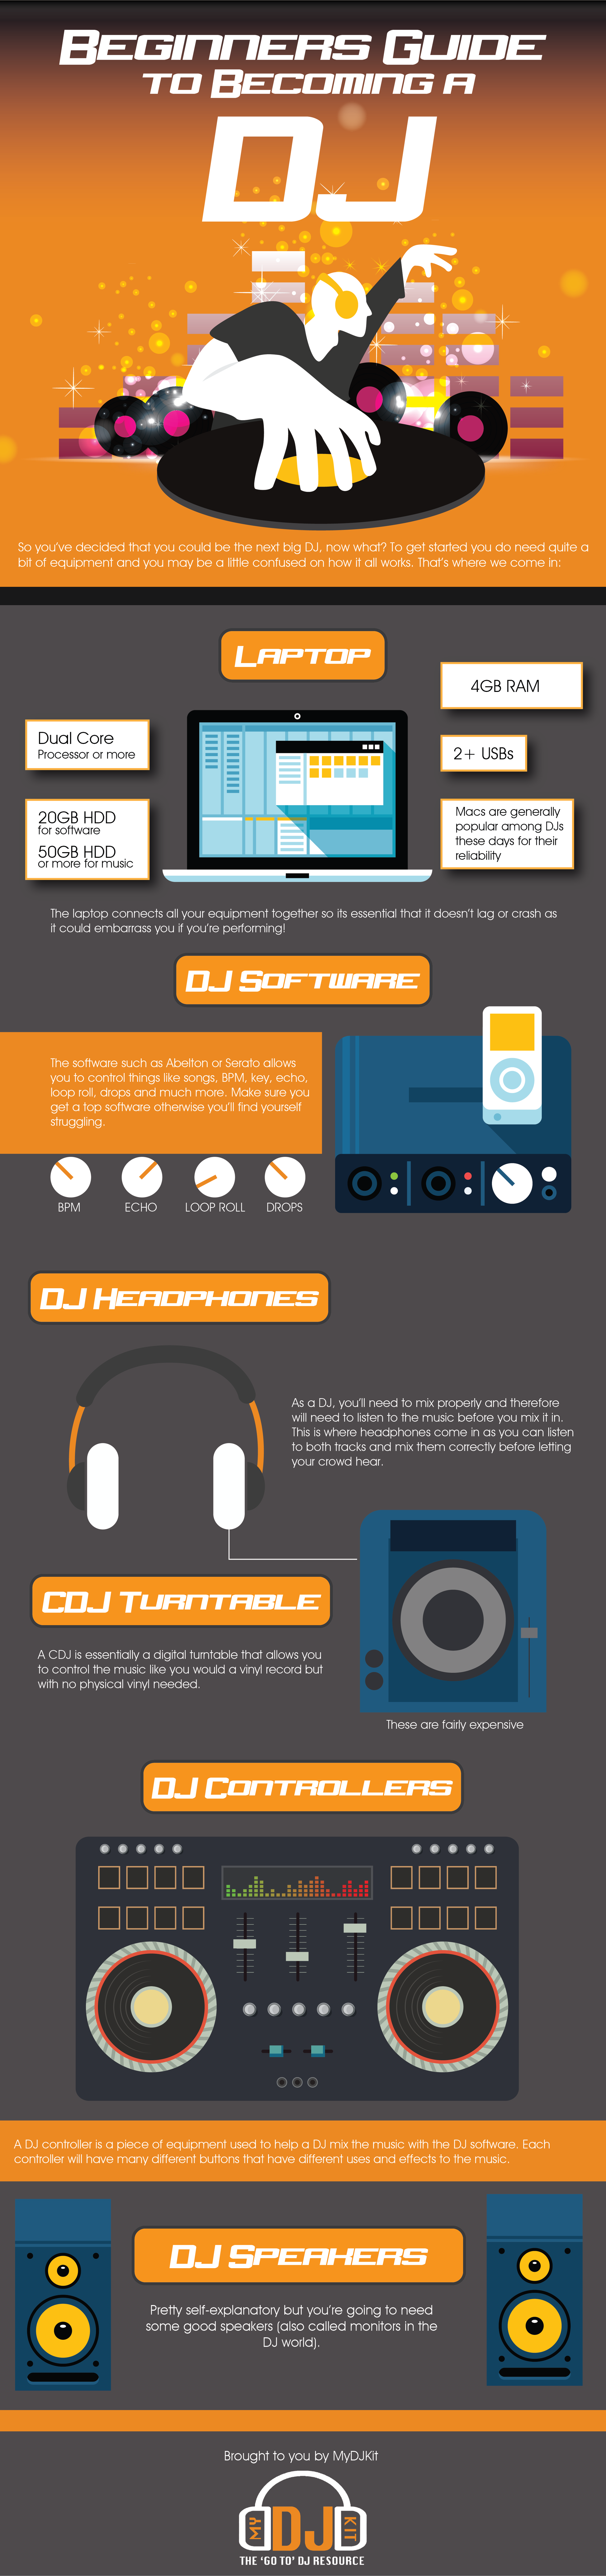 Beginners Guide To Becoming a DJ Infographic